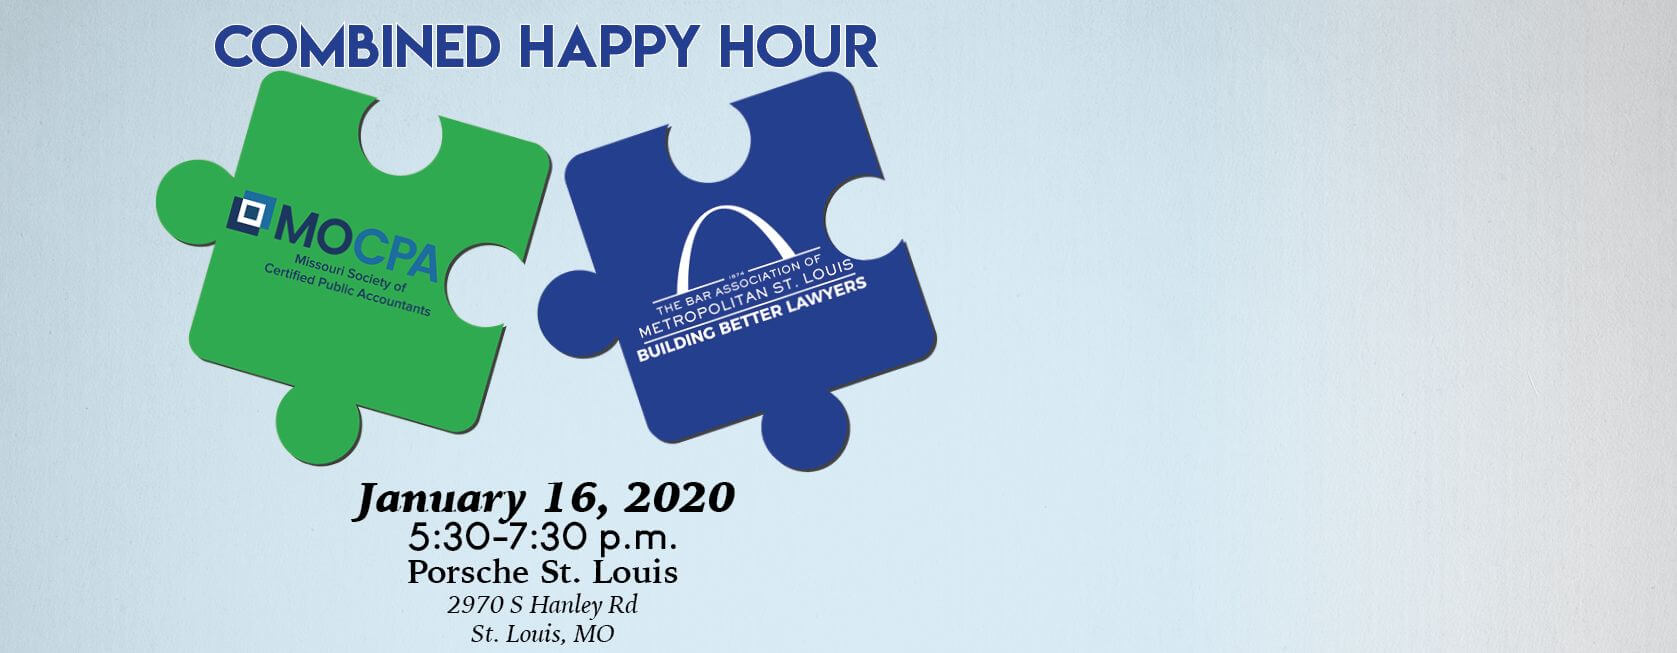 Join us for a combined happy hour with MOCPA on January 16 at Porsche St. Louis